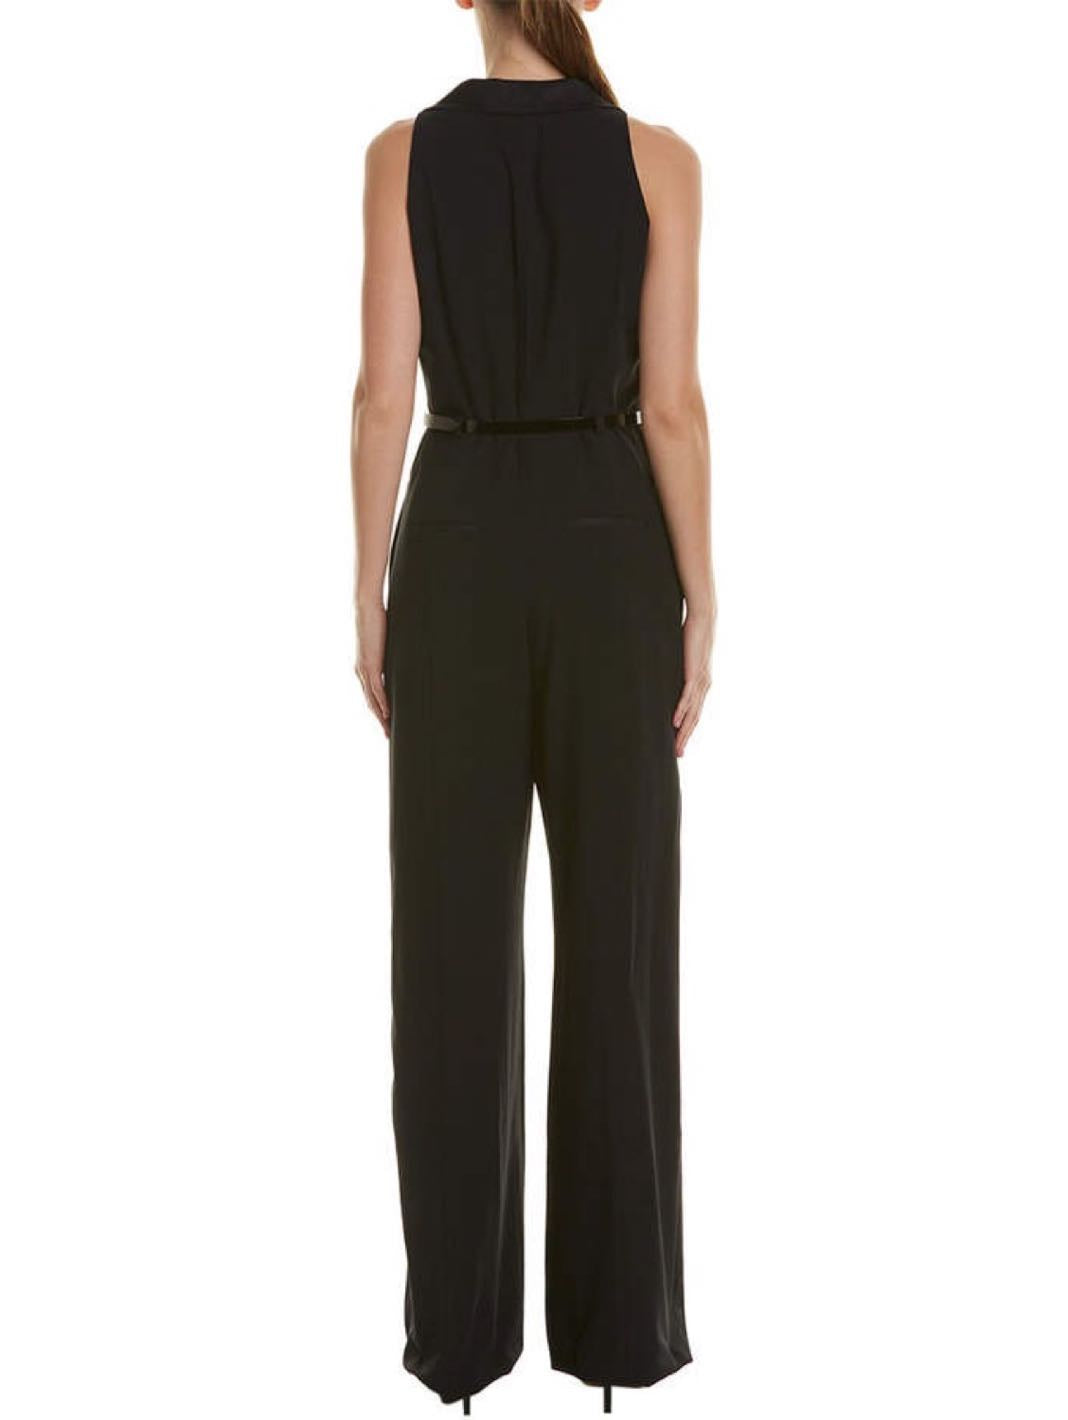 Wool Jumpsuit - The Bobby Boga